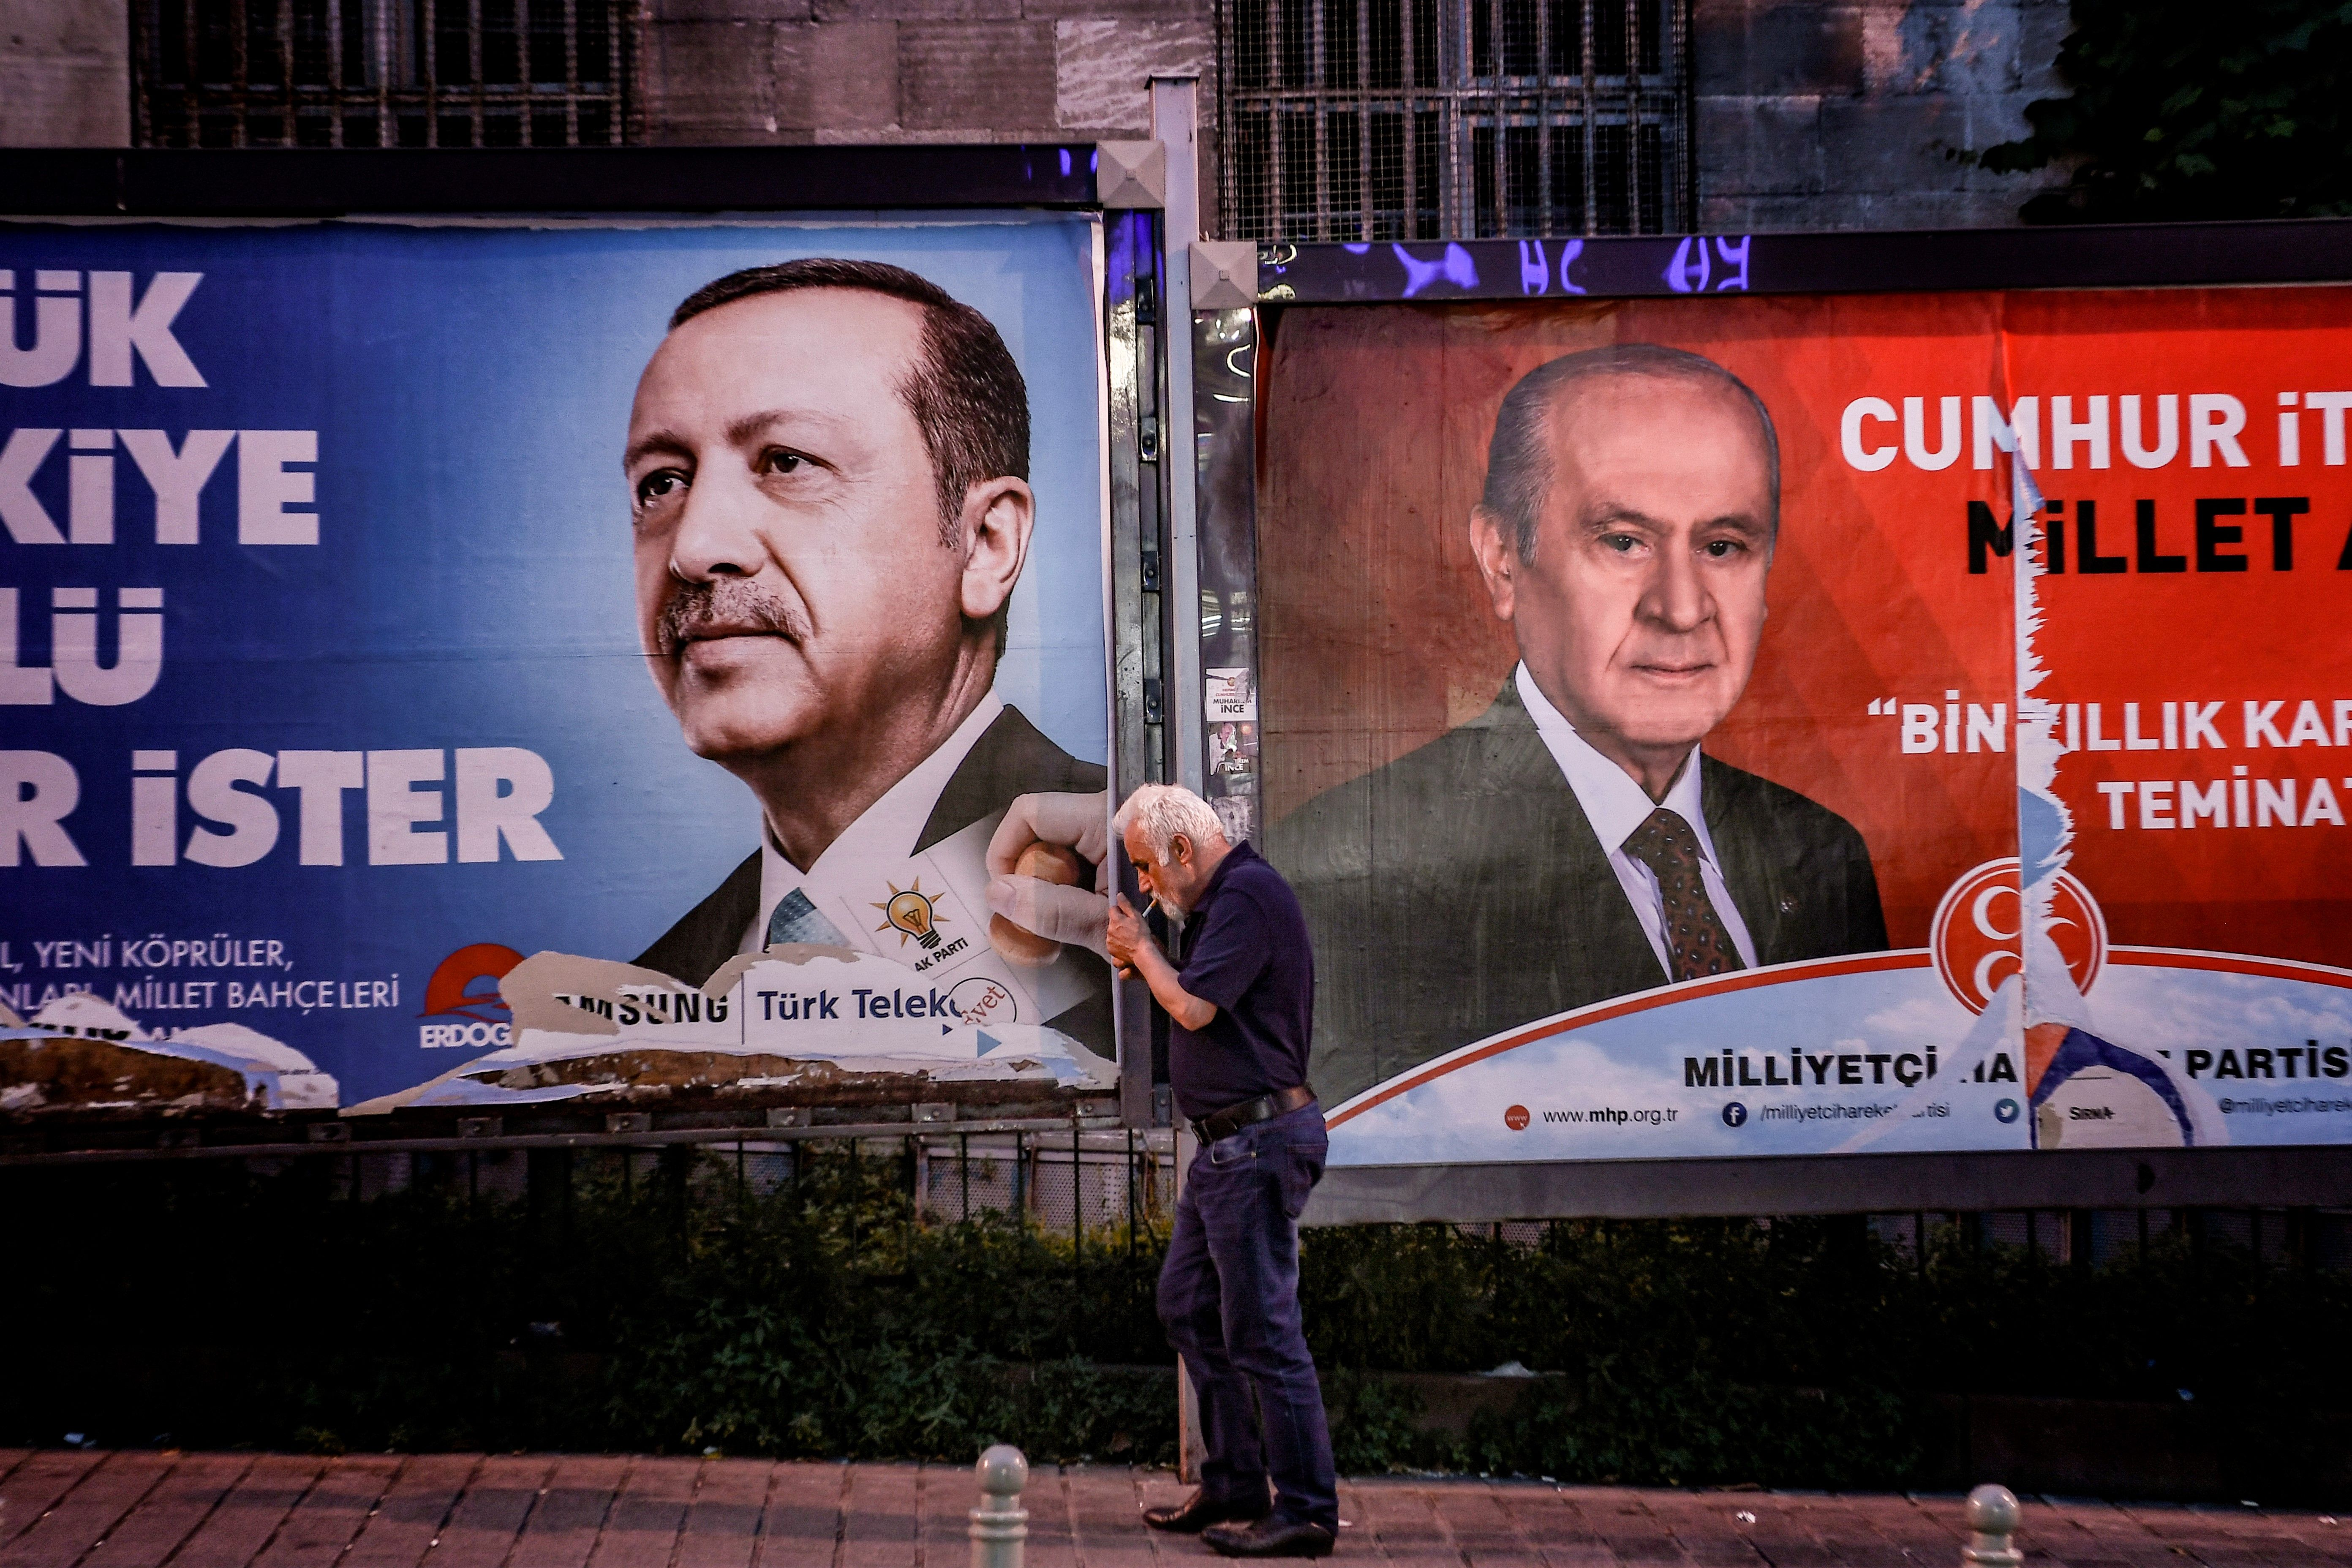 A pedestrian lights a cigarette as he walks past in banners with portraits of Turrkish President Recep Tayyip Erdogan (L) and the leader of Nationalist Movement Party (MHP) Devlet Bahceli in Istanbul on June 19, 2018.